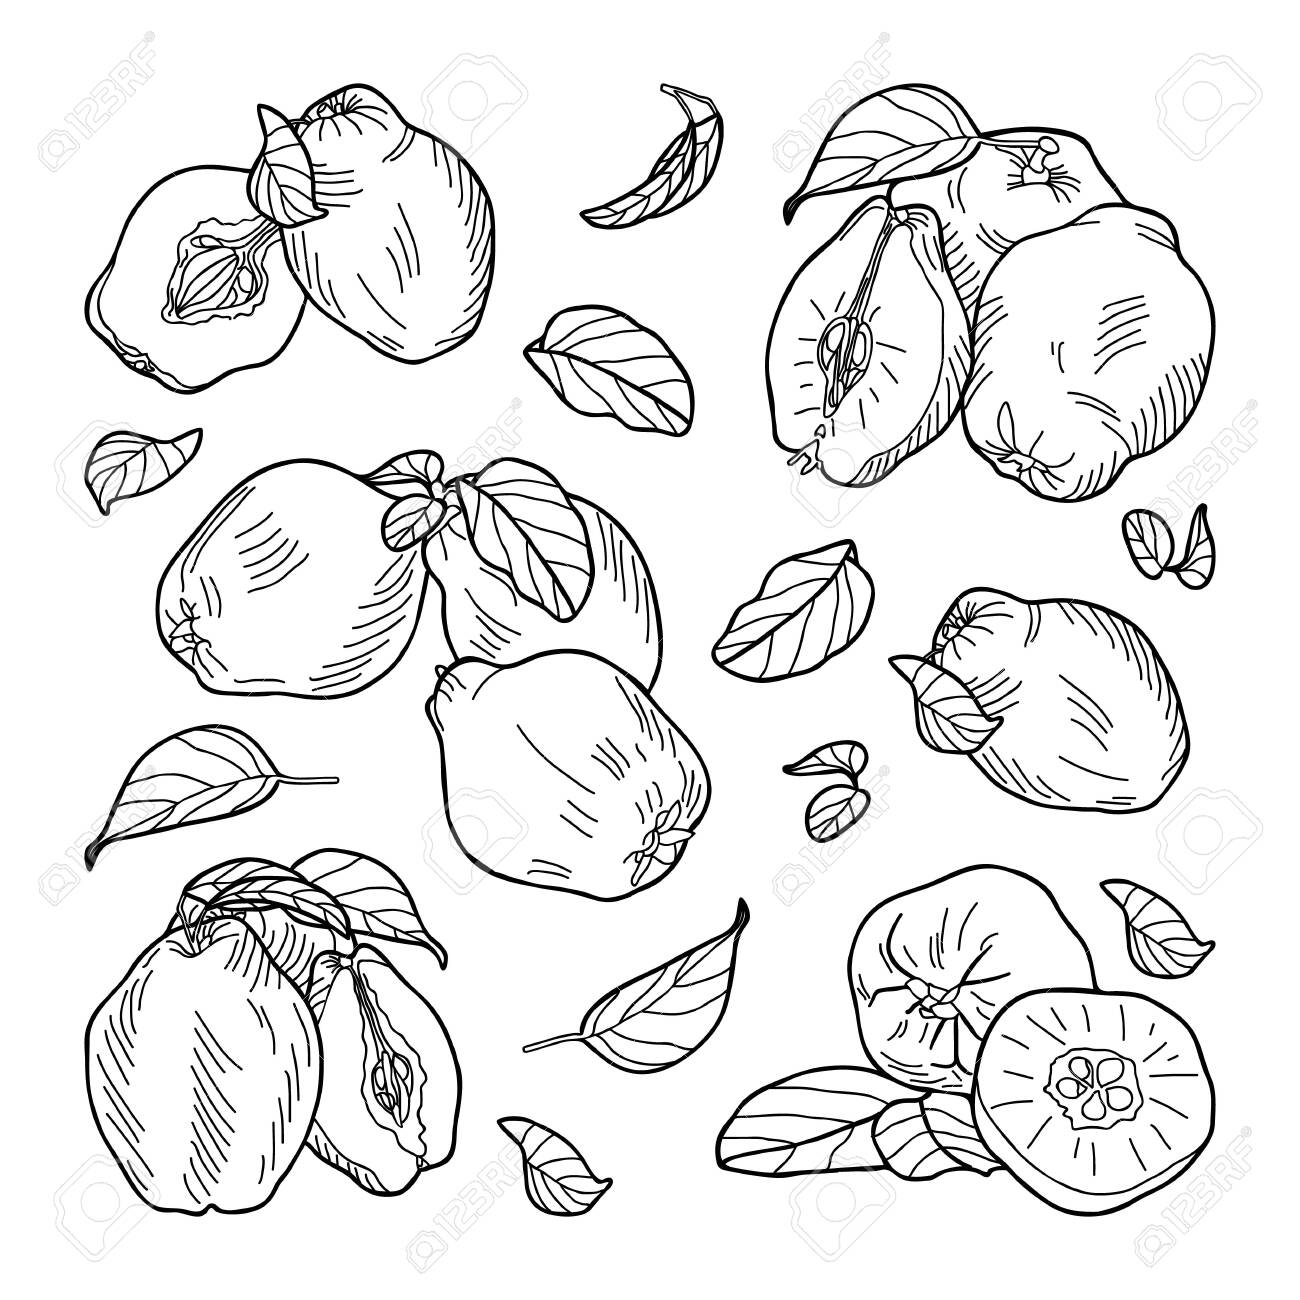 Composition of quince fruits: whole, halves, leaves. Hand-drawn vector illustration. - 153667103